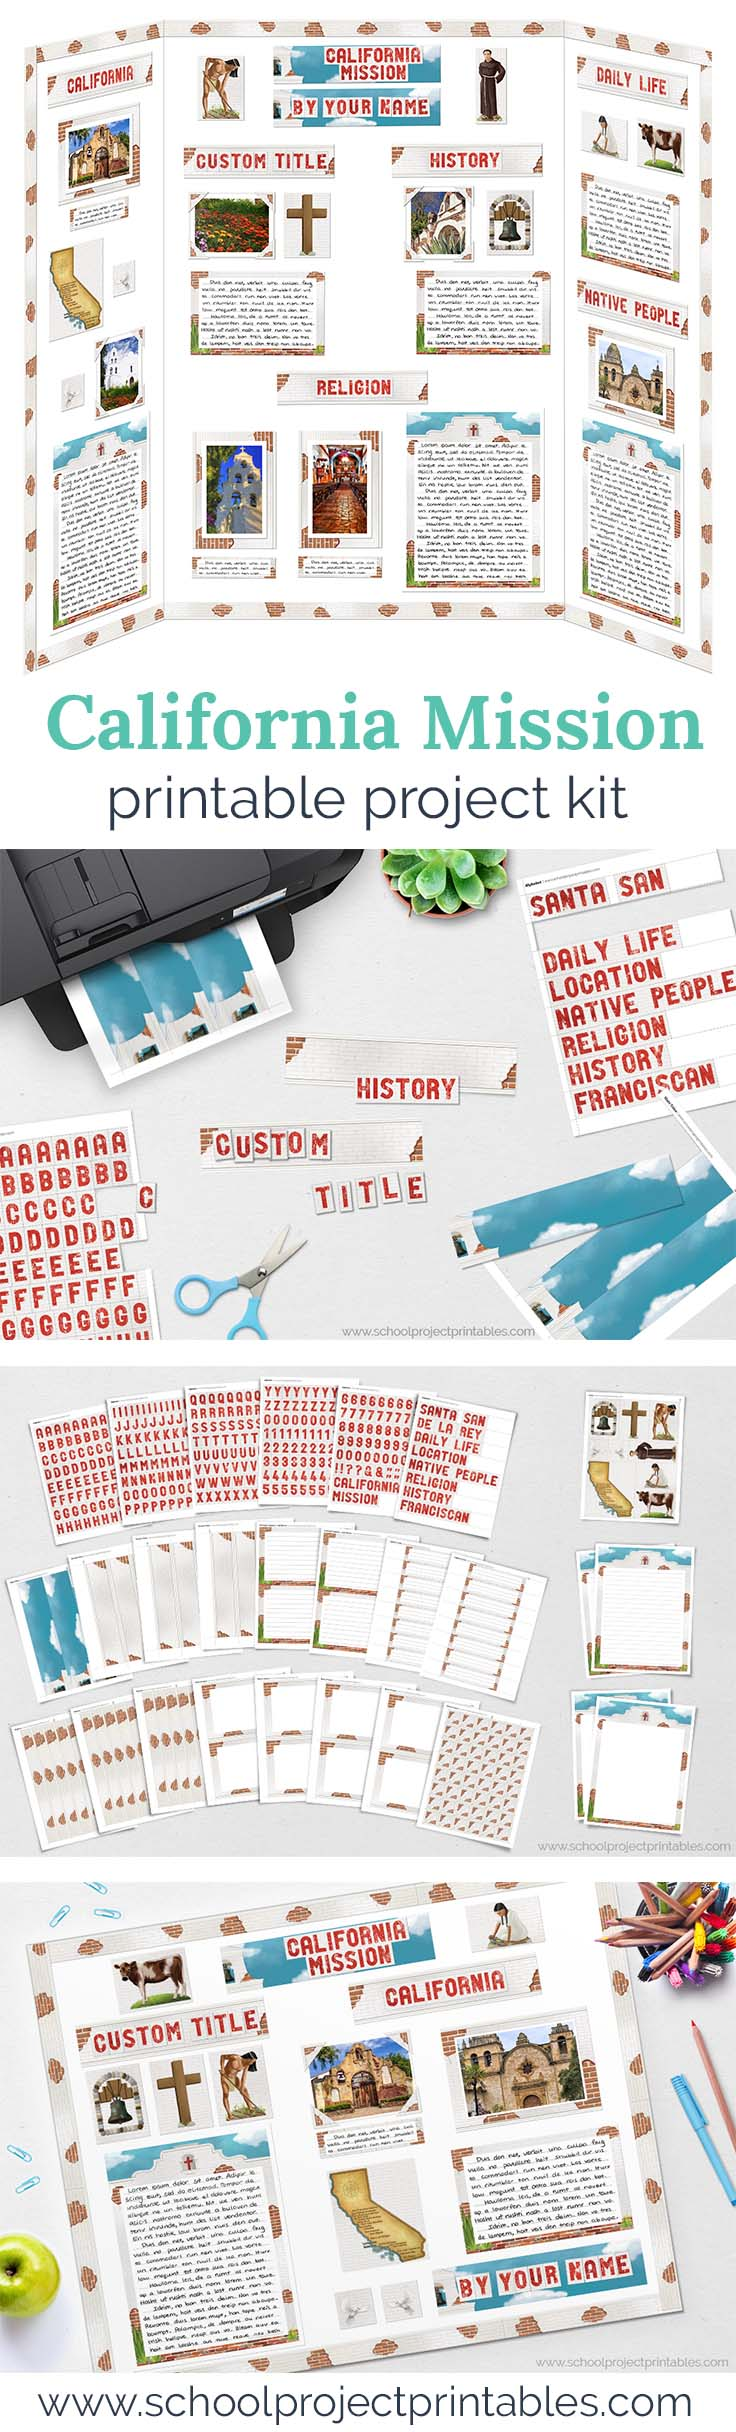 Long Pinterest Pin showing printable kit to make a poster board for a California Missions school project